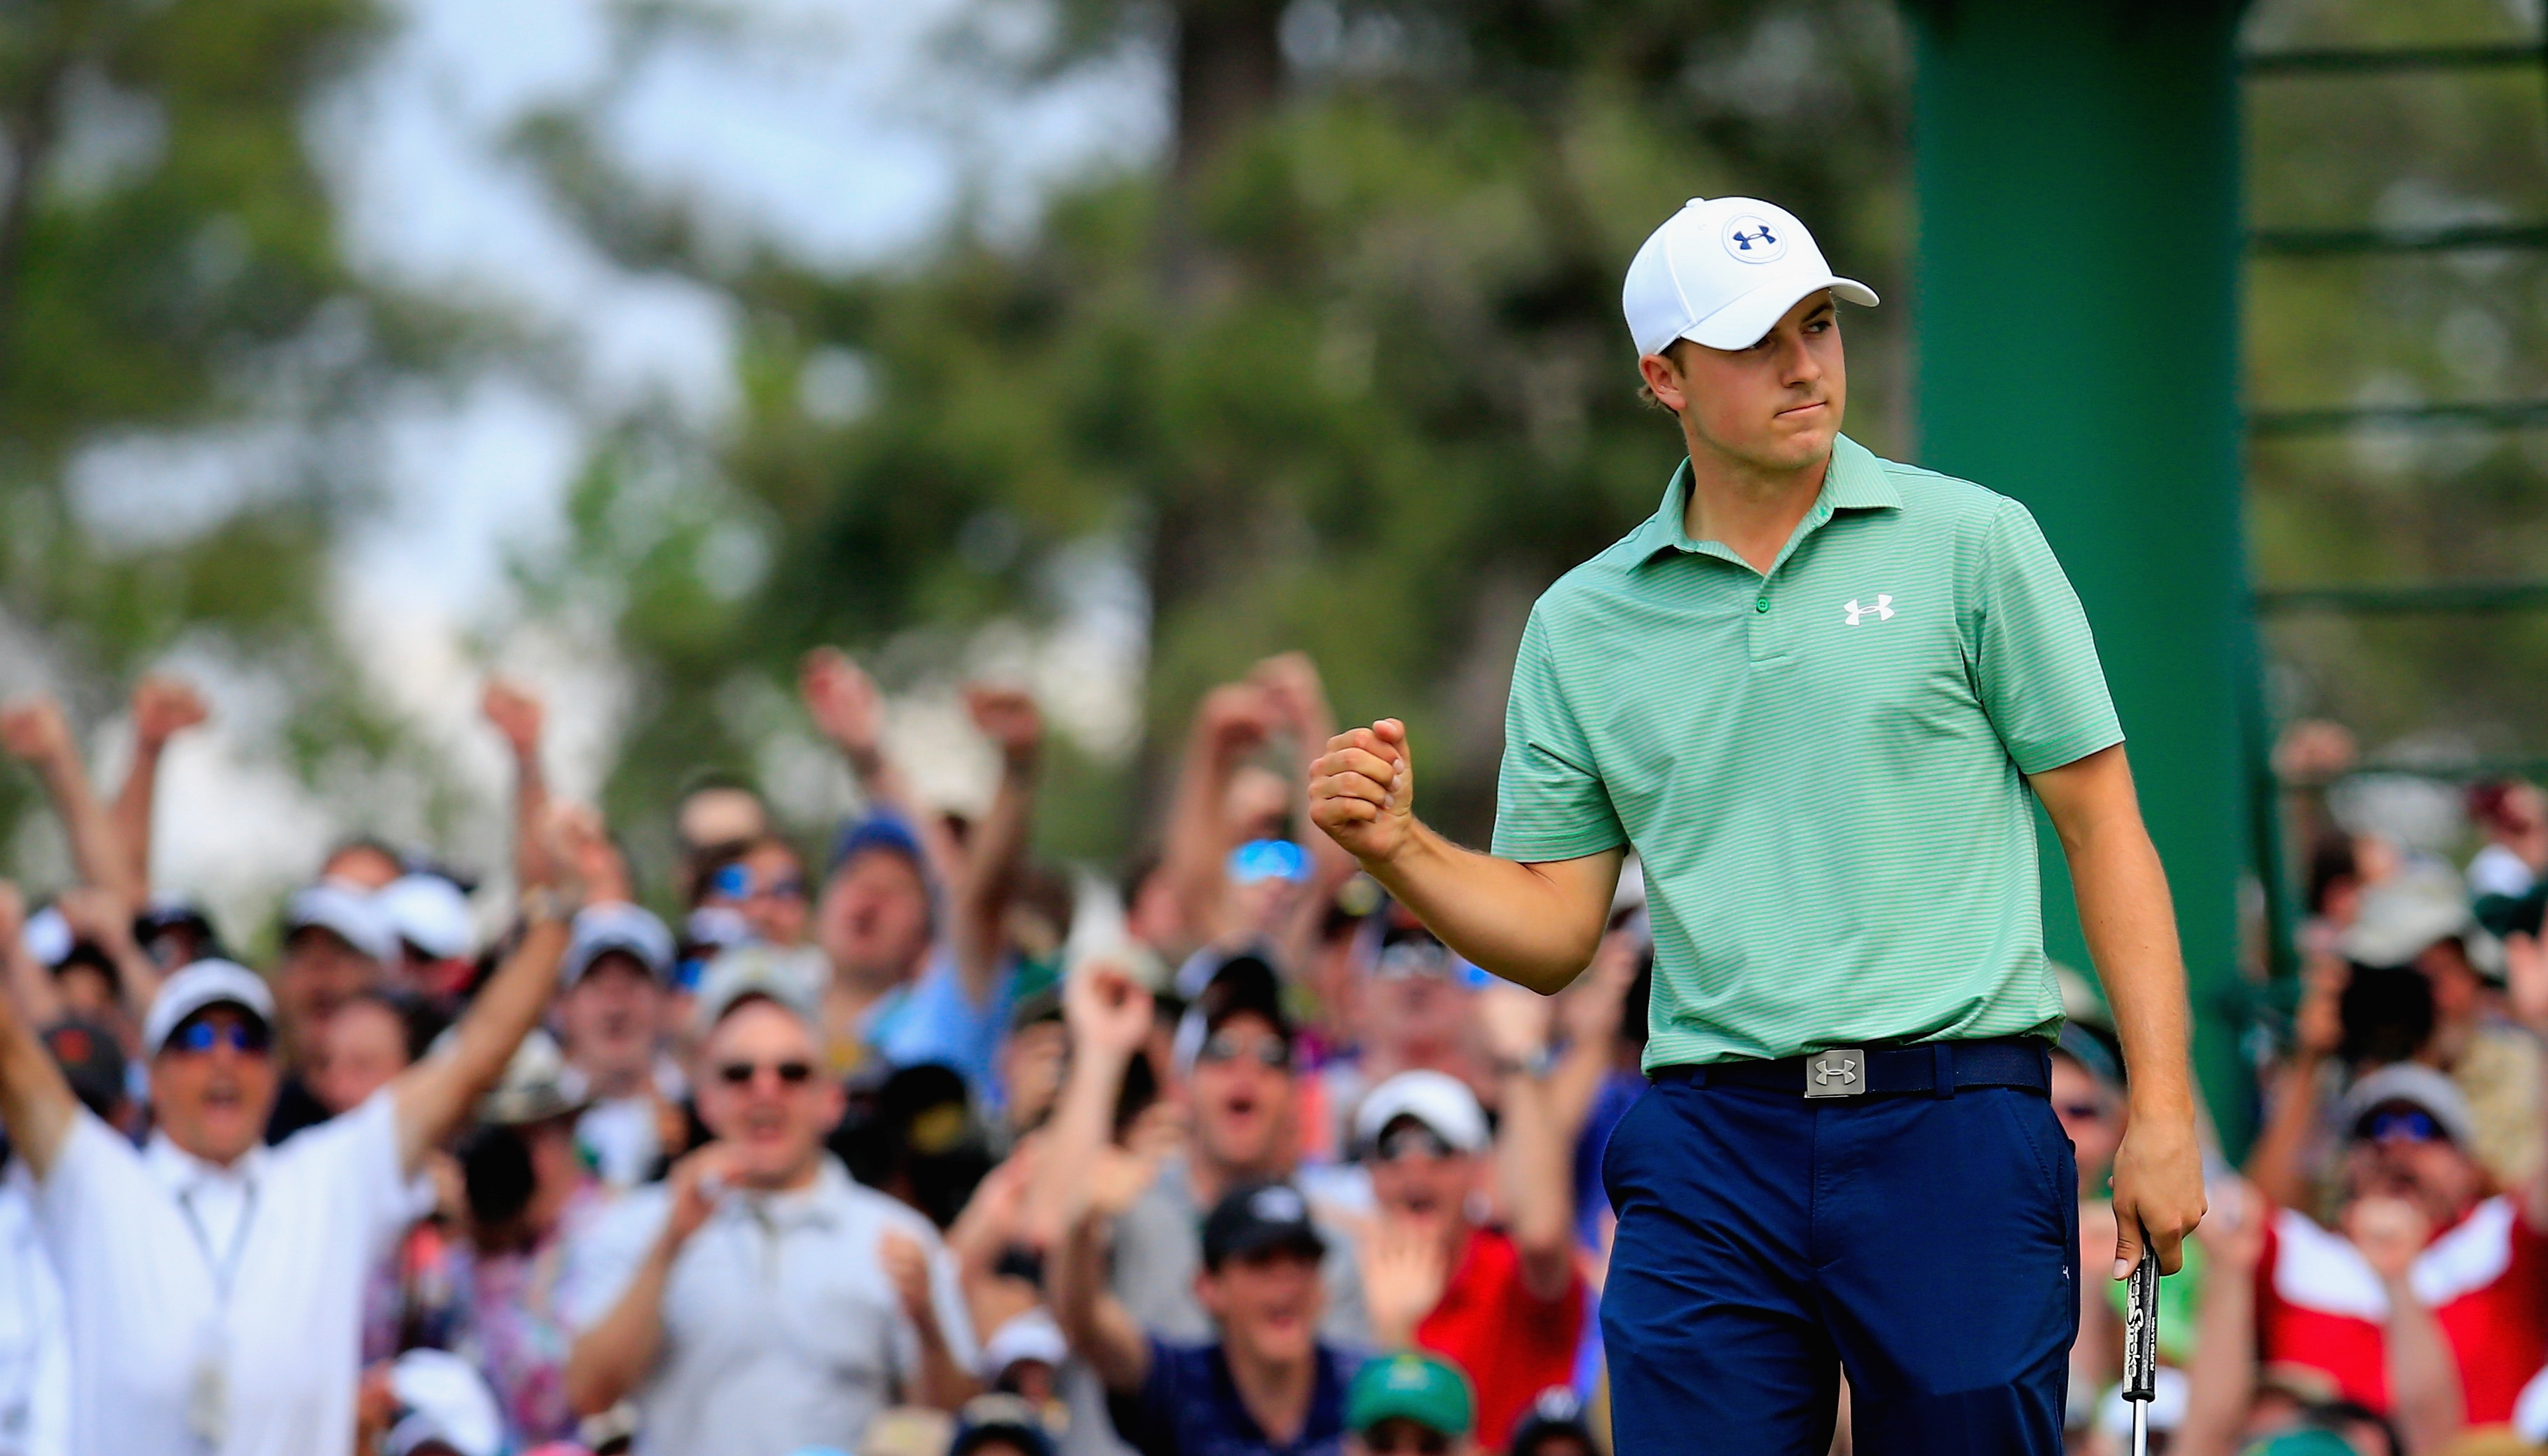 Jordan Spieth, who at age 20 finished second at the Masters on Sunday, has emerged as golf's next big attraction.